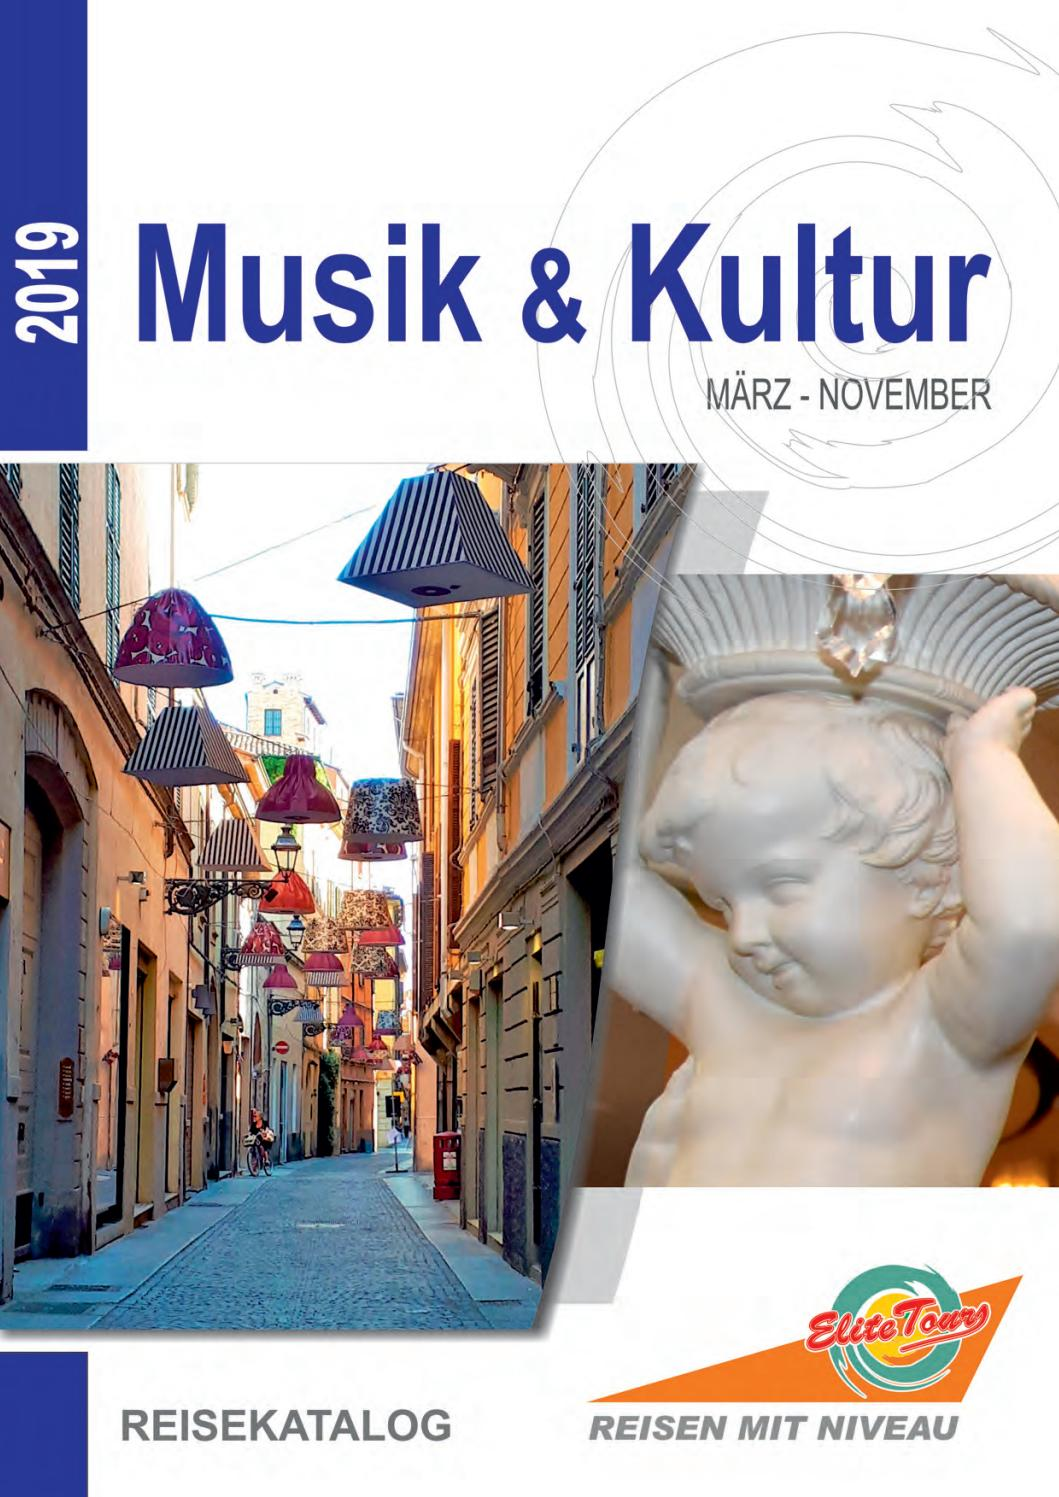 Musik & Kultur 2019 by Elite Tours Reisebüro - issuu